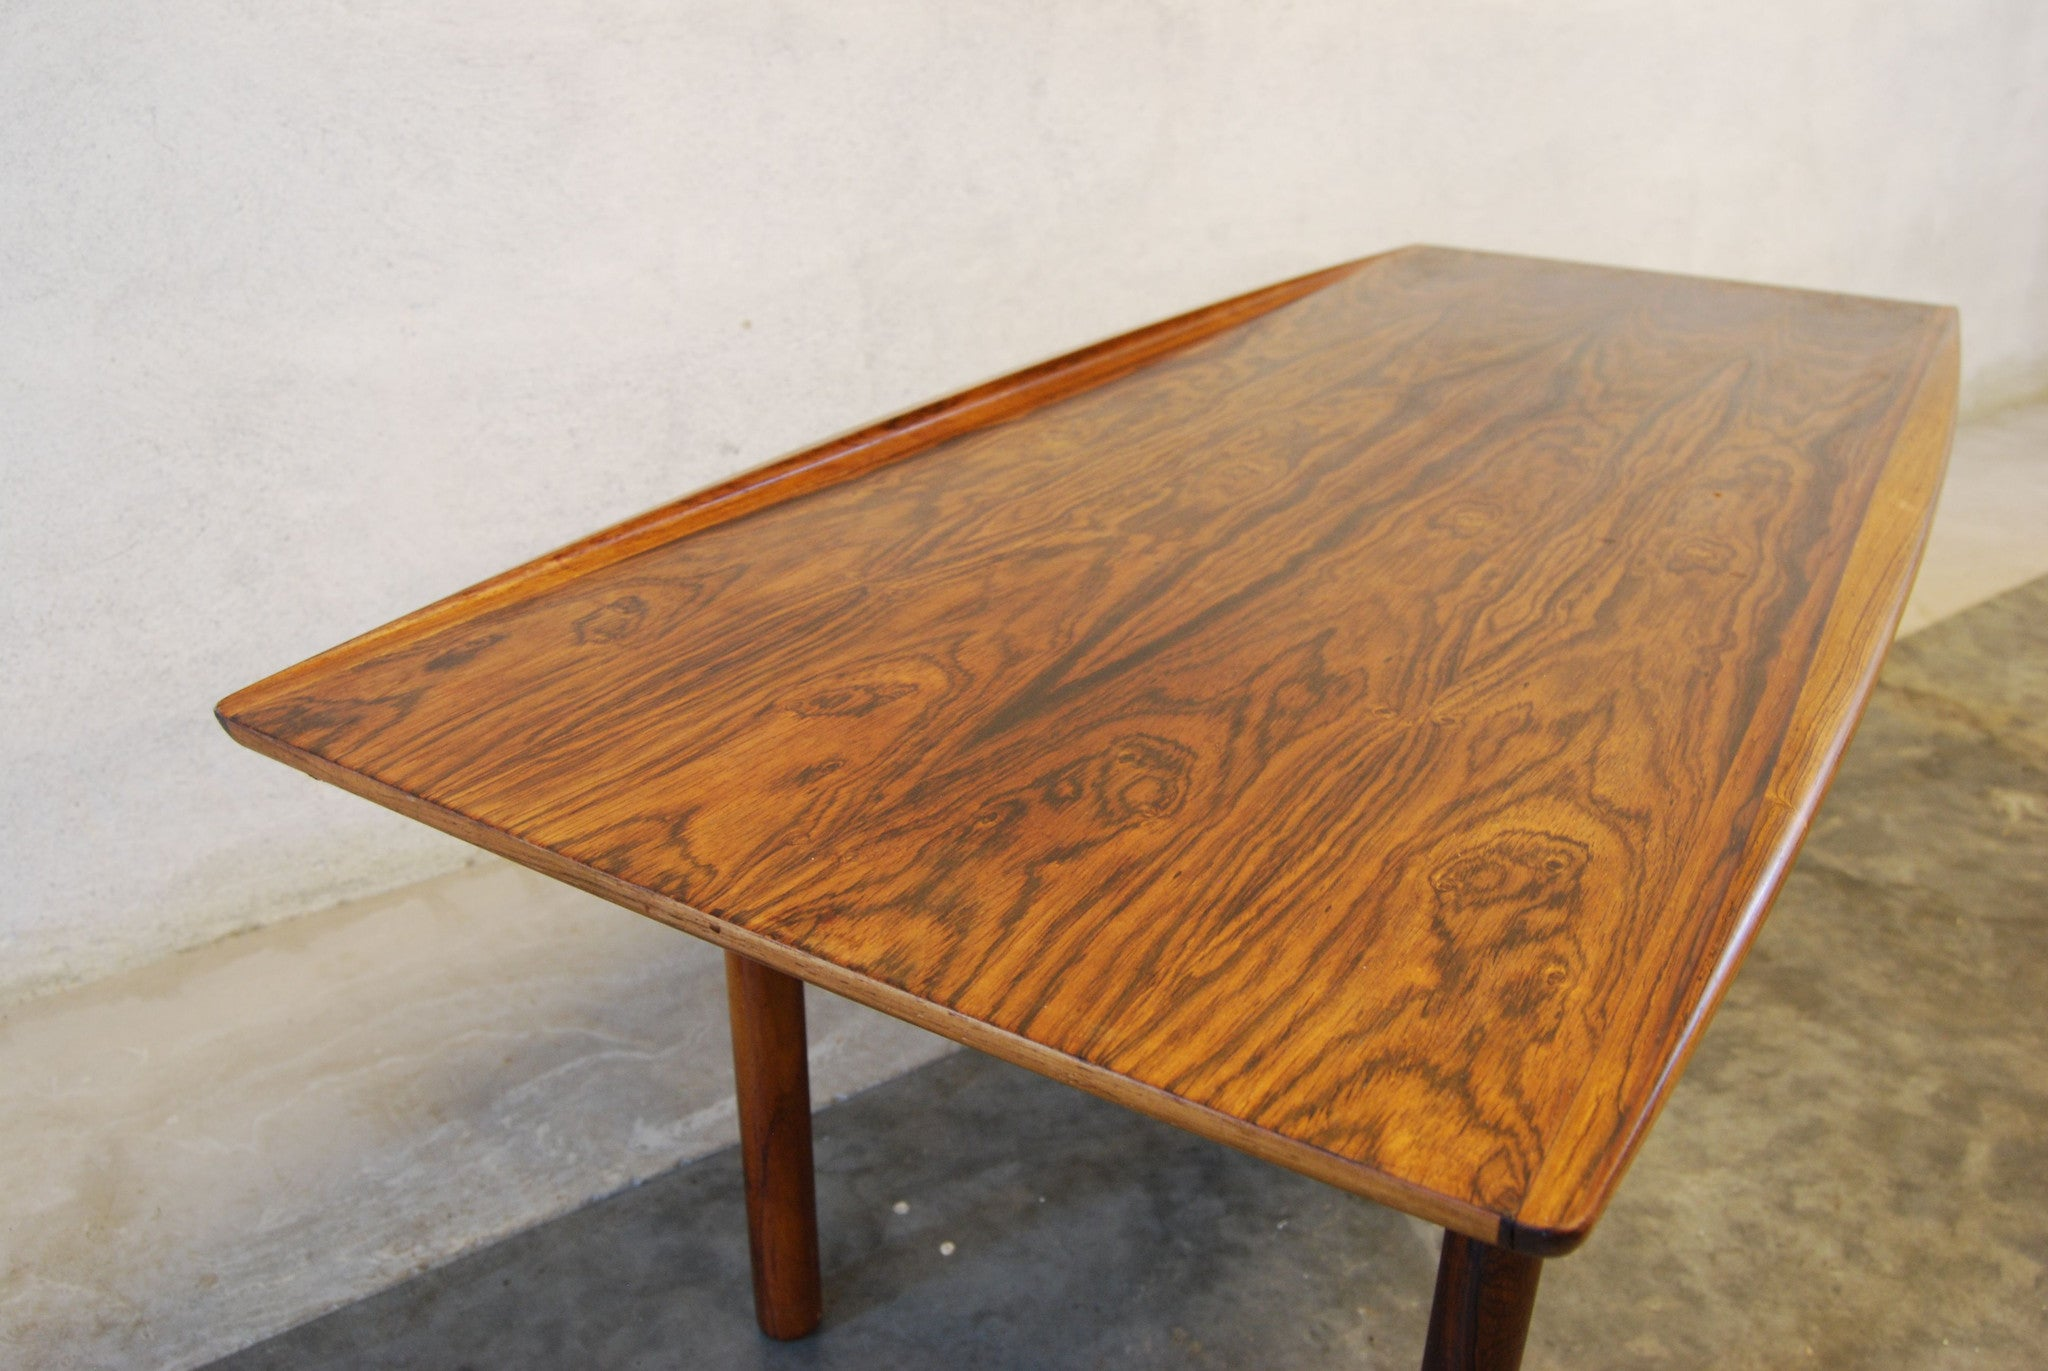 Rosewood coffee table by Grete Jalk